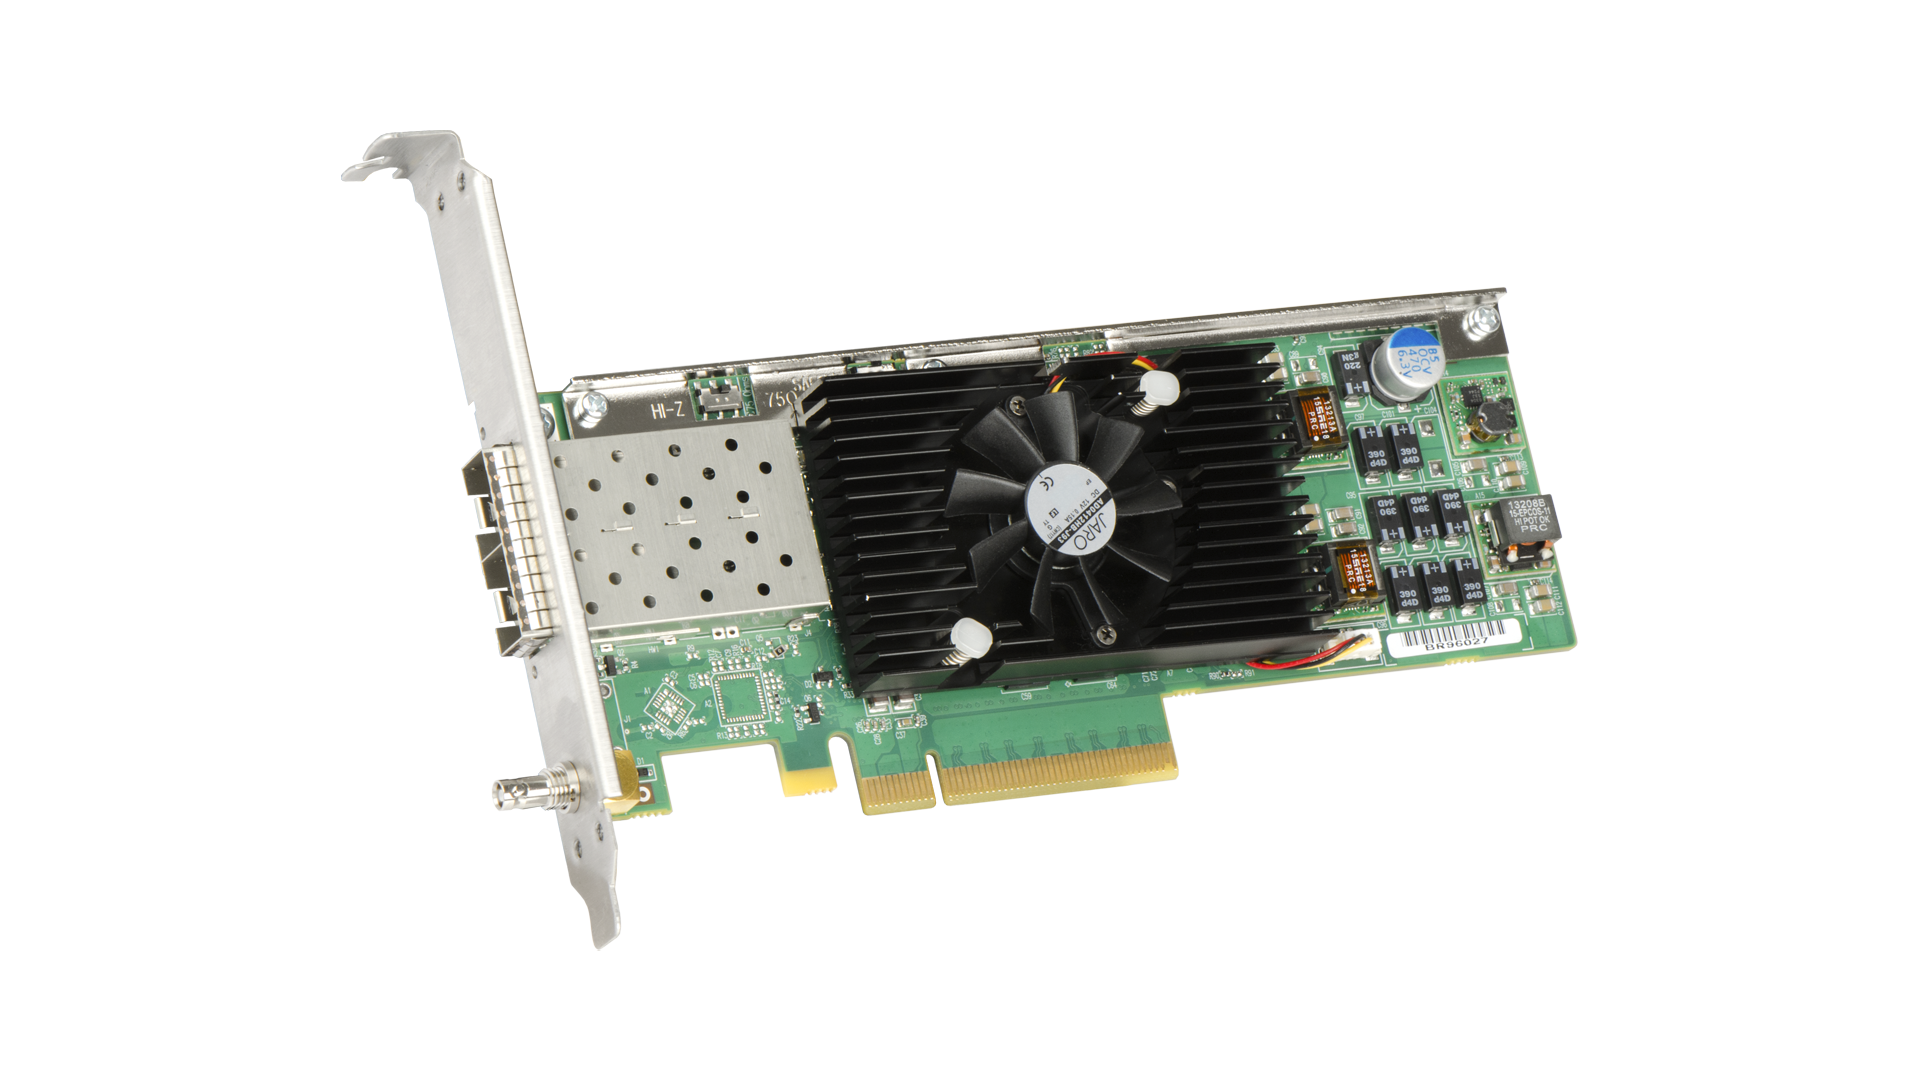 X.mio3 IP ST 2110 Network Interface Card